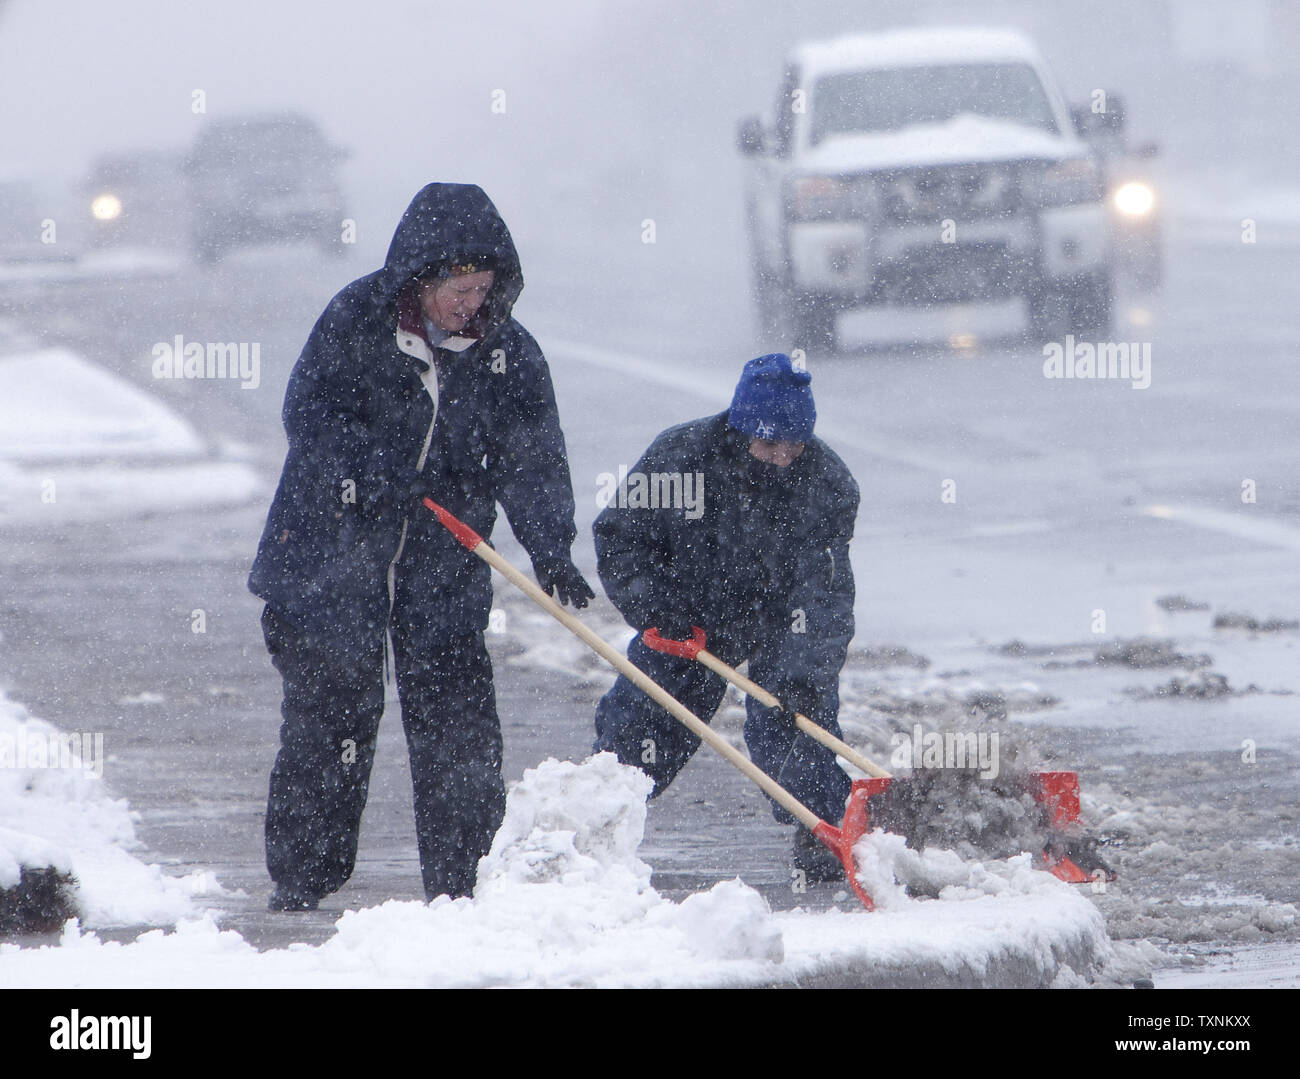 Workers clear sidewalks of heavy wet snow during a winter storm in Denver on March 9, 2013.  Weather reports indicated 6-12 inches of snow shall fall in the area before the quick moving storm moves out into the eastern plains.     UPI/Gary C. Caskey - Stock Image